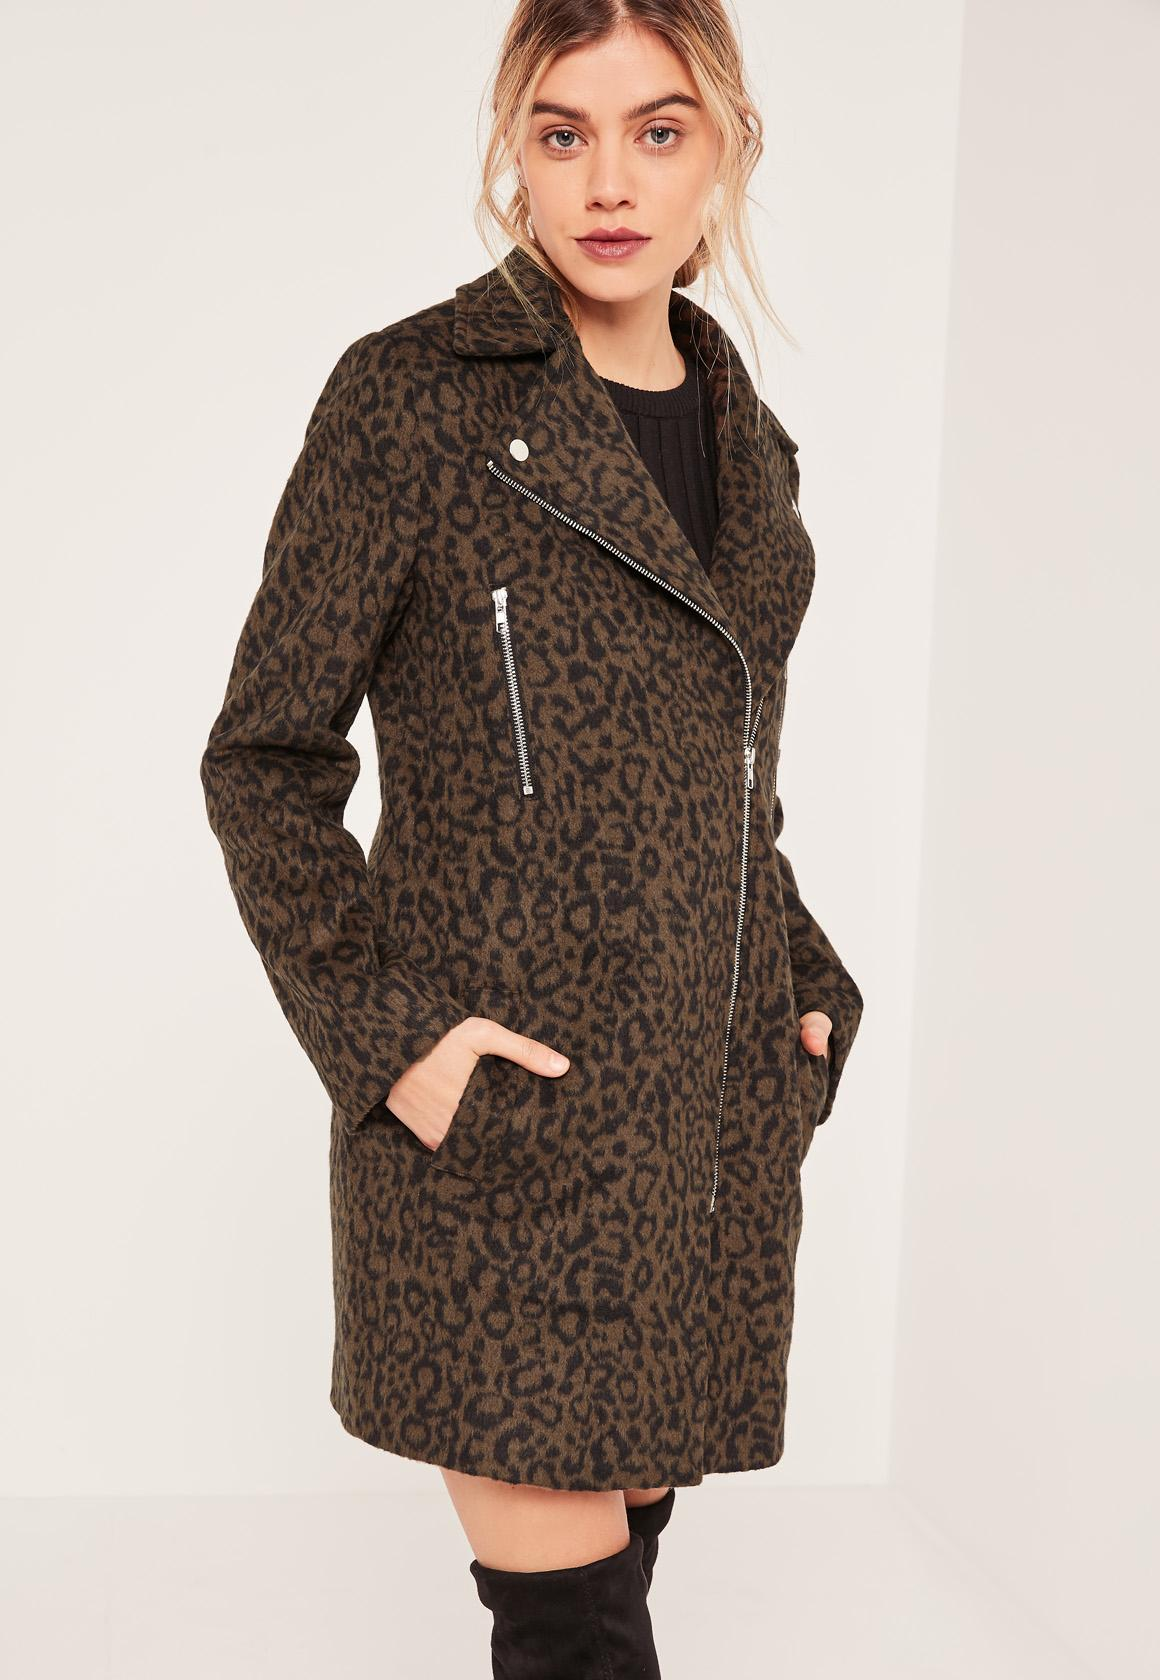 Women's Wool Coats - Camel & Khaki | Missguided